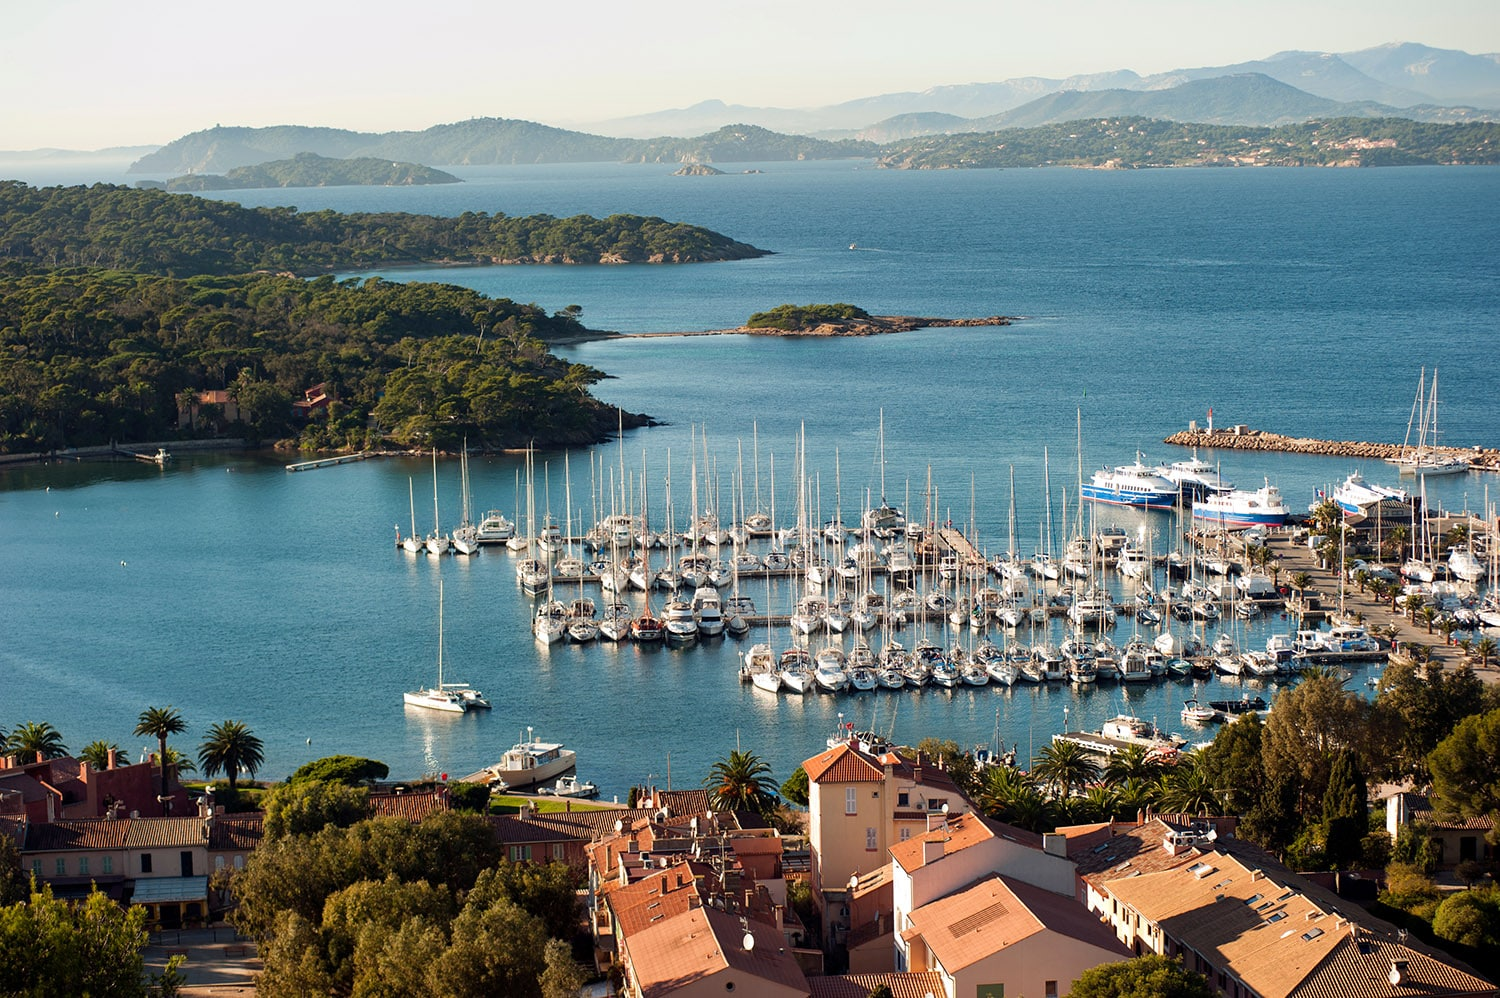 The port of Porquerolles and its Provencal village on the French Riviera